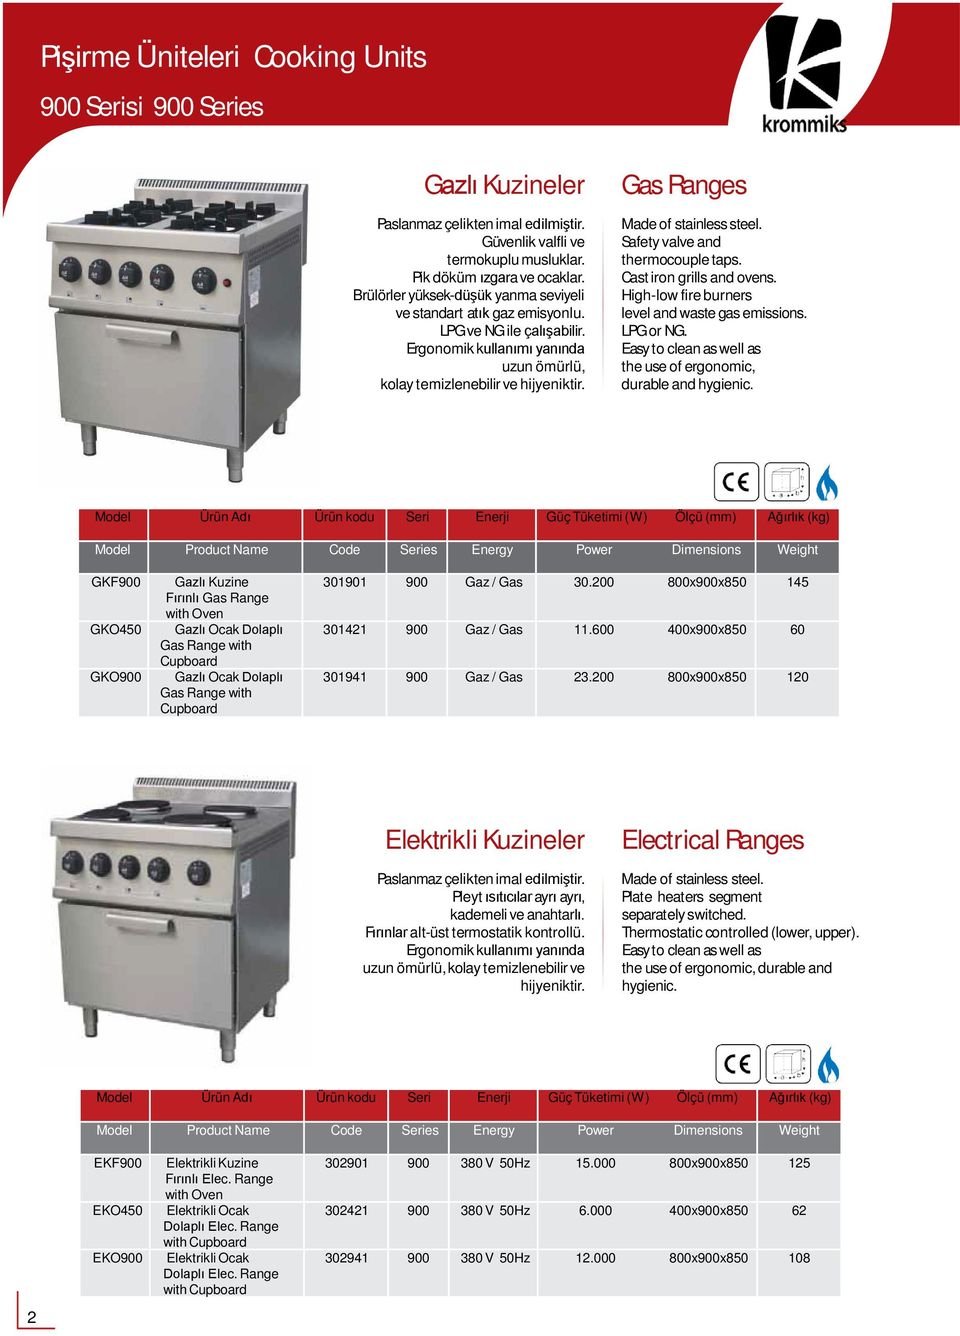 Gas Ranges Safety valve and thermocouple taps. Cast iron grills and ovens. High-low fire burners level and waste gas emissions. LPGor NG.